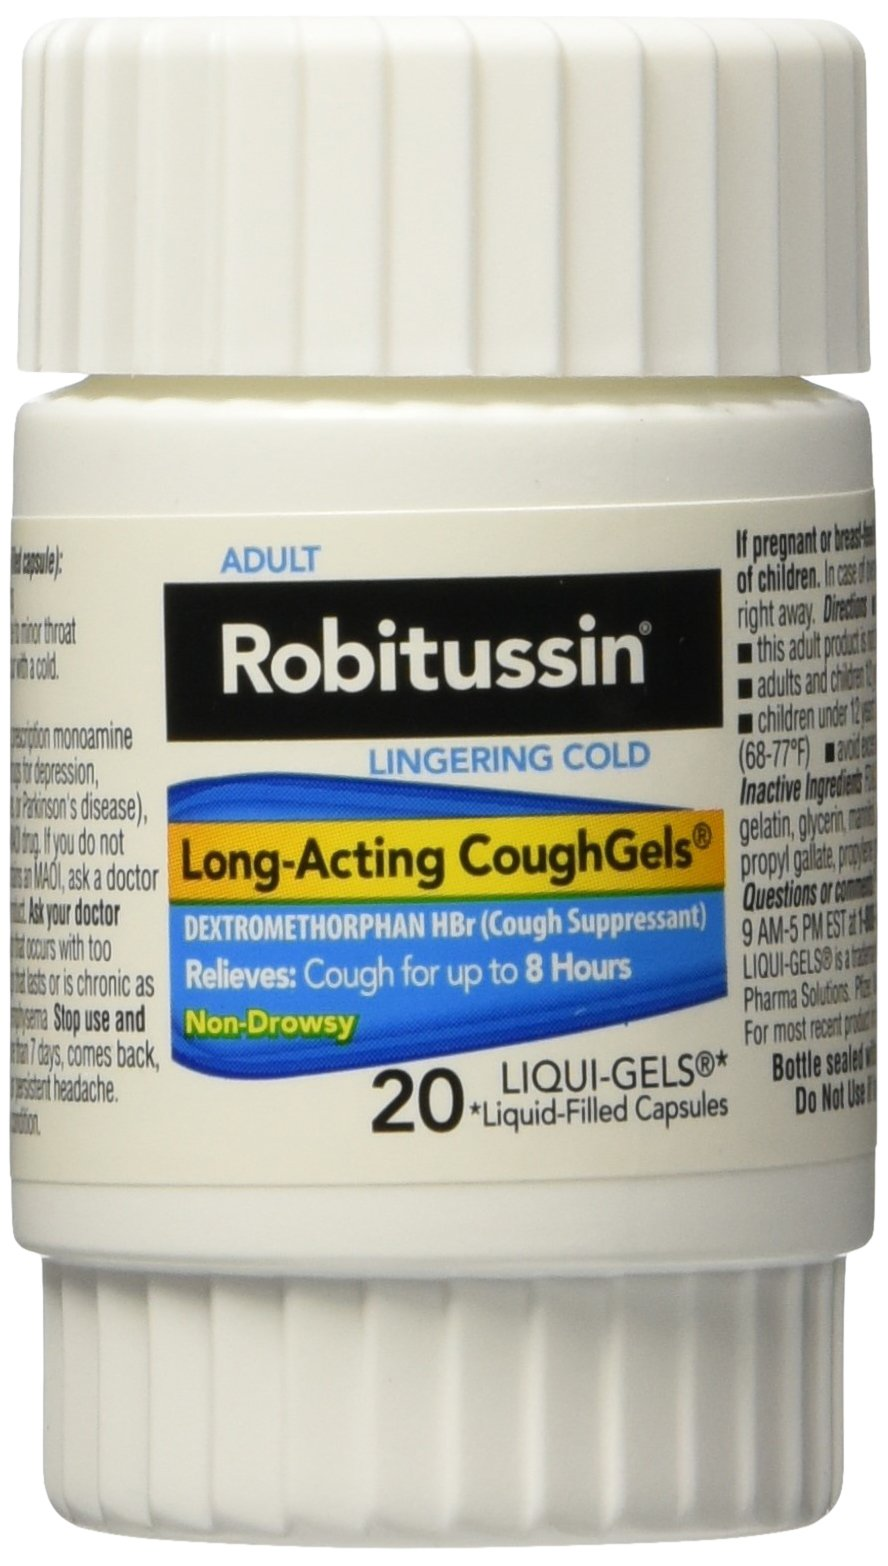 Robitussin Adult Lingering Cold Long Acting Cold Gels, 20 Liqui - Gels (Pack of 4) by Robitussin